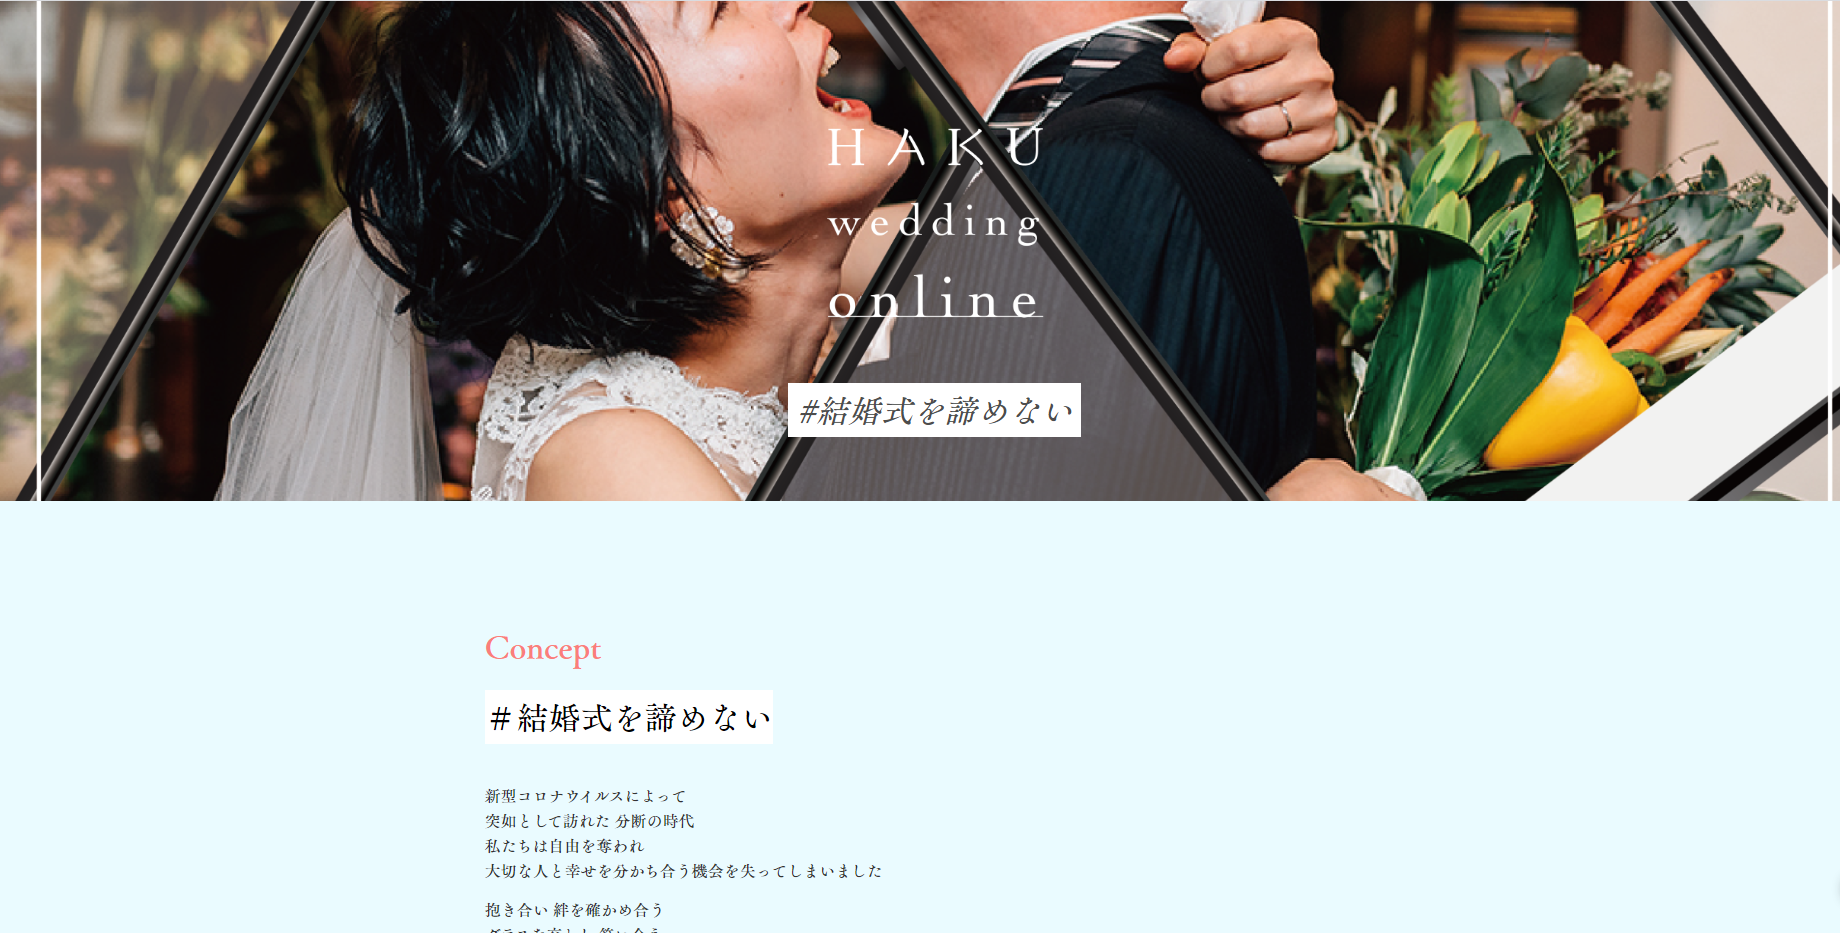 HAKU weddingonline